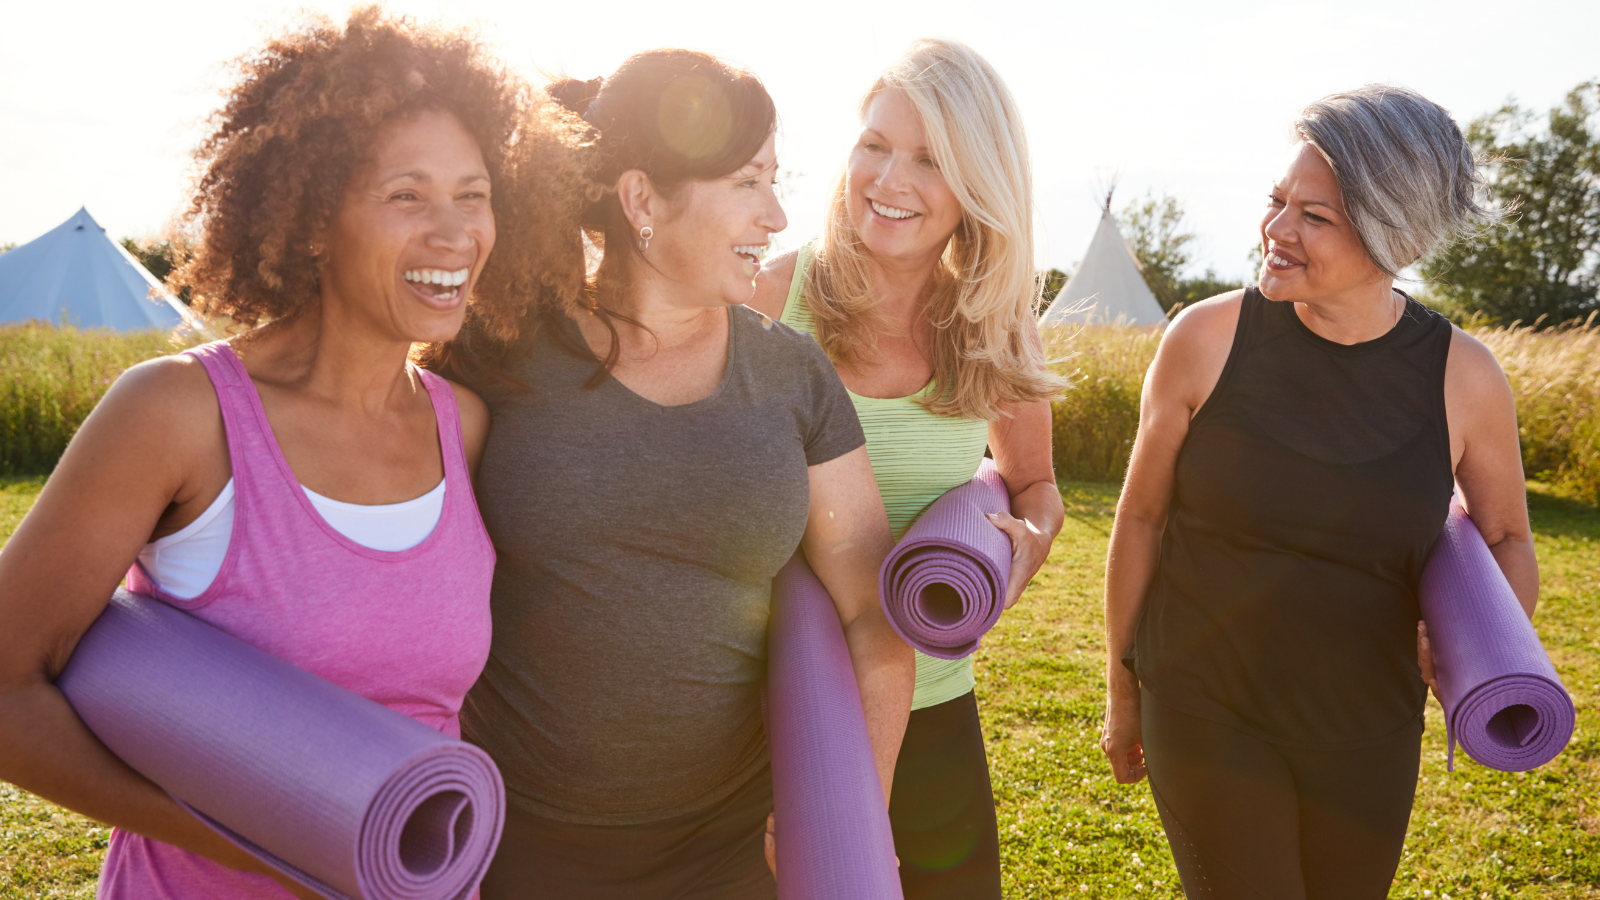 Wellness tips to make choices that promote our own wellbeing